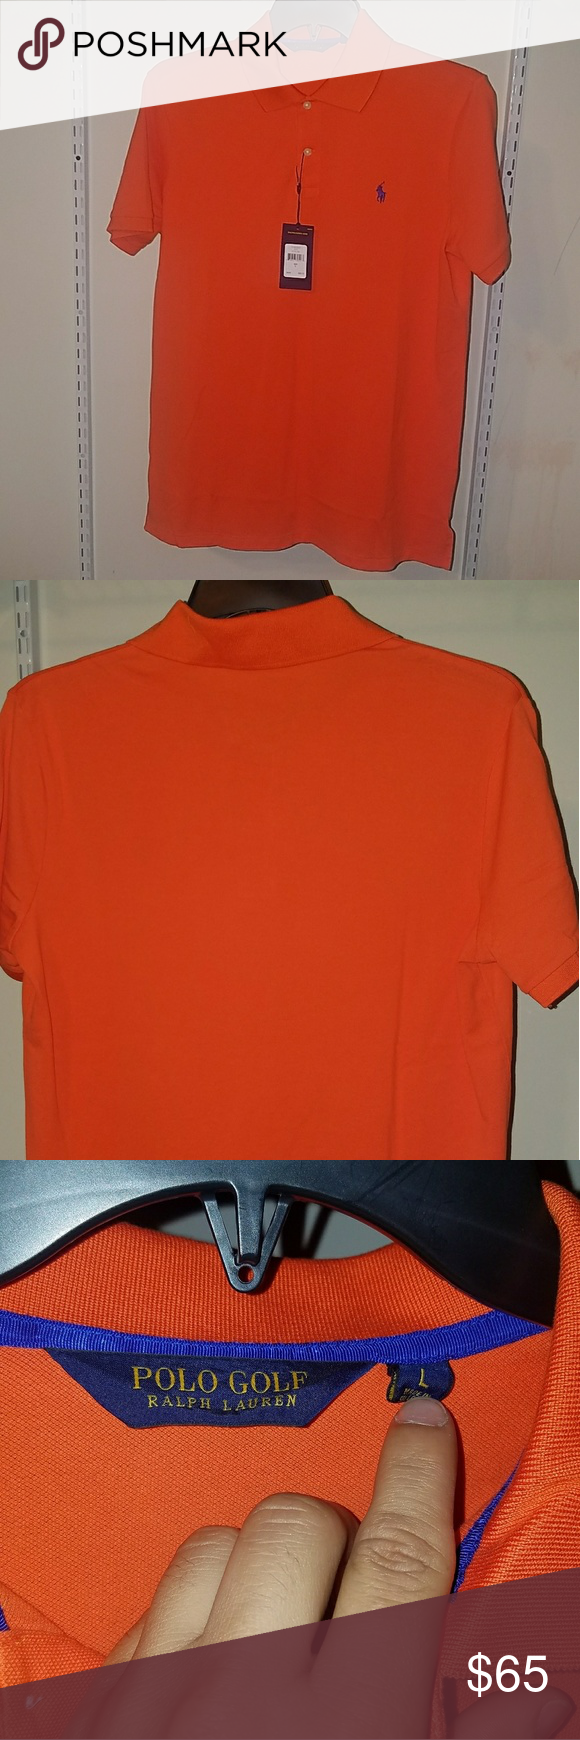 A03 Ralph Lauren Polo Golf Shirt Active Orange Brand new Polo Golf Shirt Large NWT 97% cotton 3% elastane 21' chest 31' length 18' arm sleeve from middle of the collar measurement to the shoulder and sleeve. Active Orange with Navy Blue Polo horse logo Polo by Ralph Lauren Shirts Polos